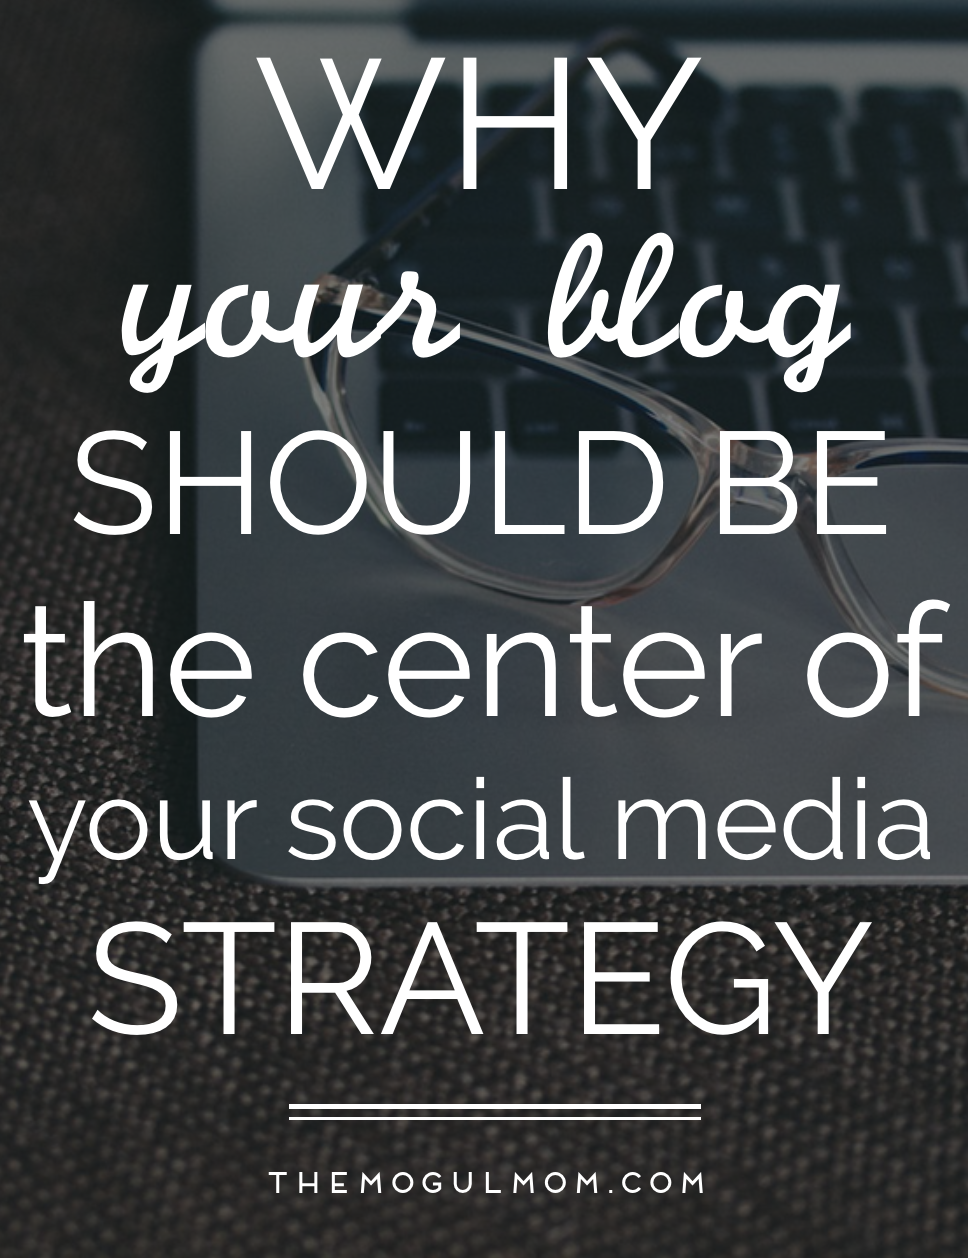 5 Reasons Why Your Blog Should Be the Center of Your Social Media Strategy